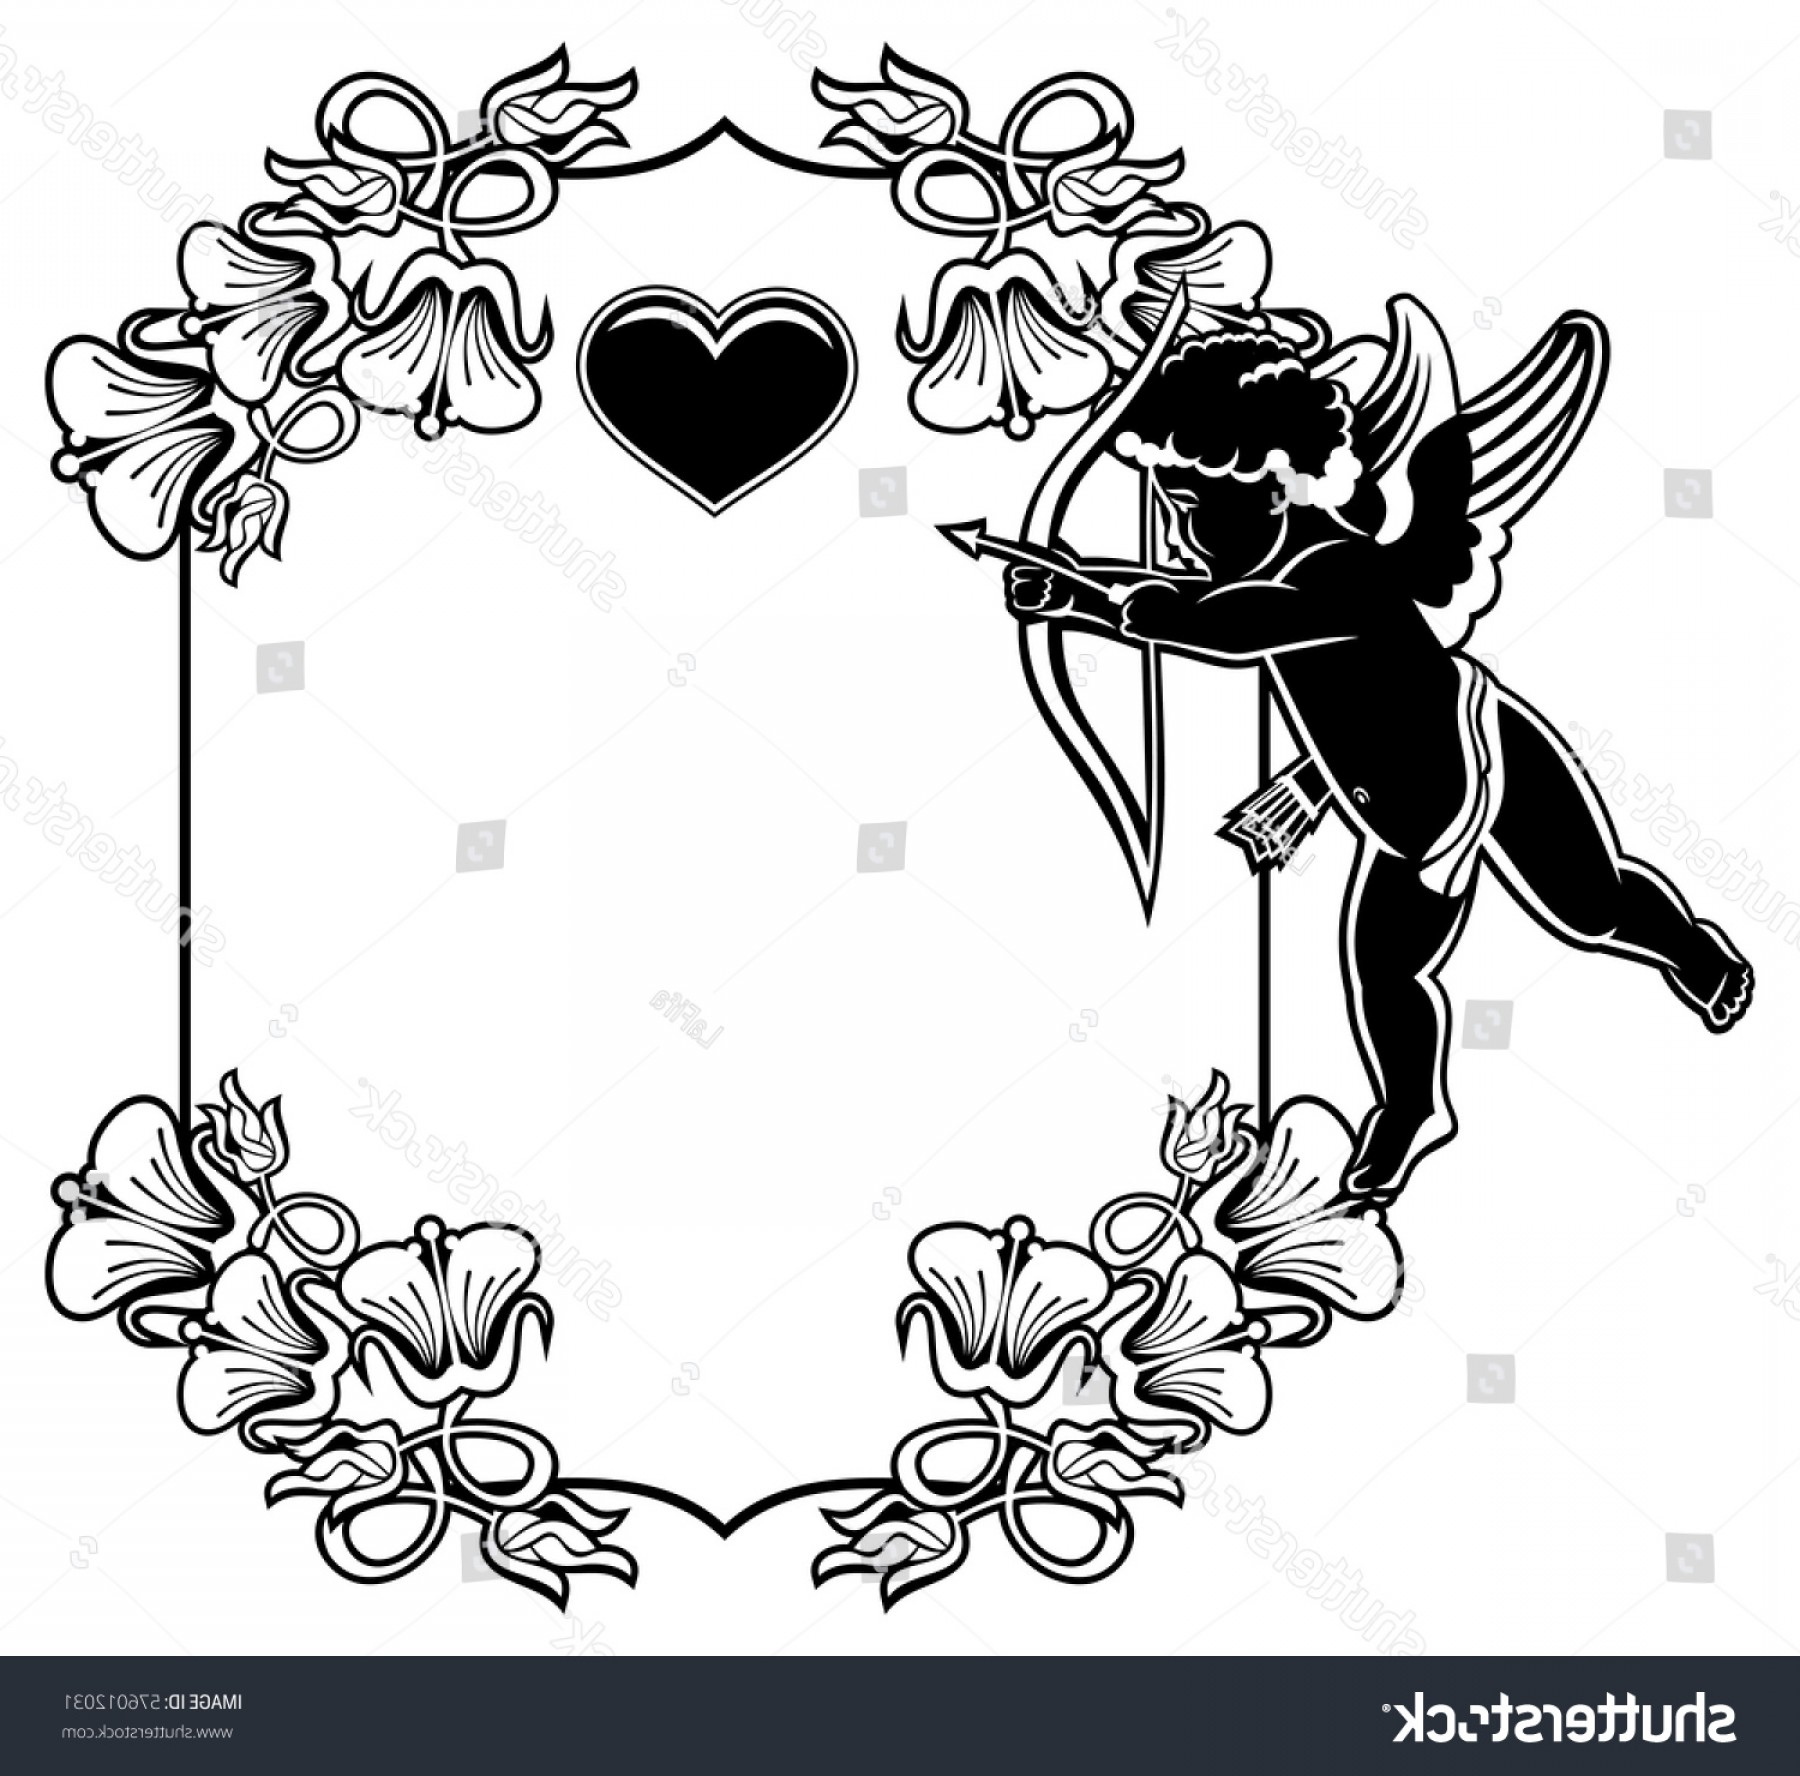 Hunting Heart Vector: Cupid Bow Hunting Hearts Black White